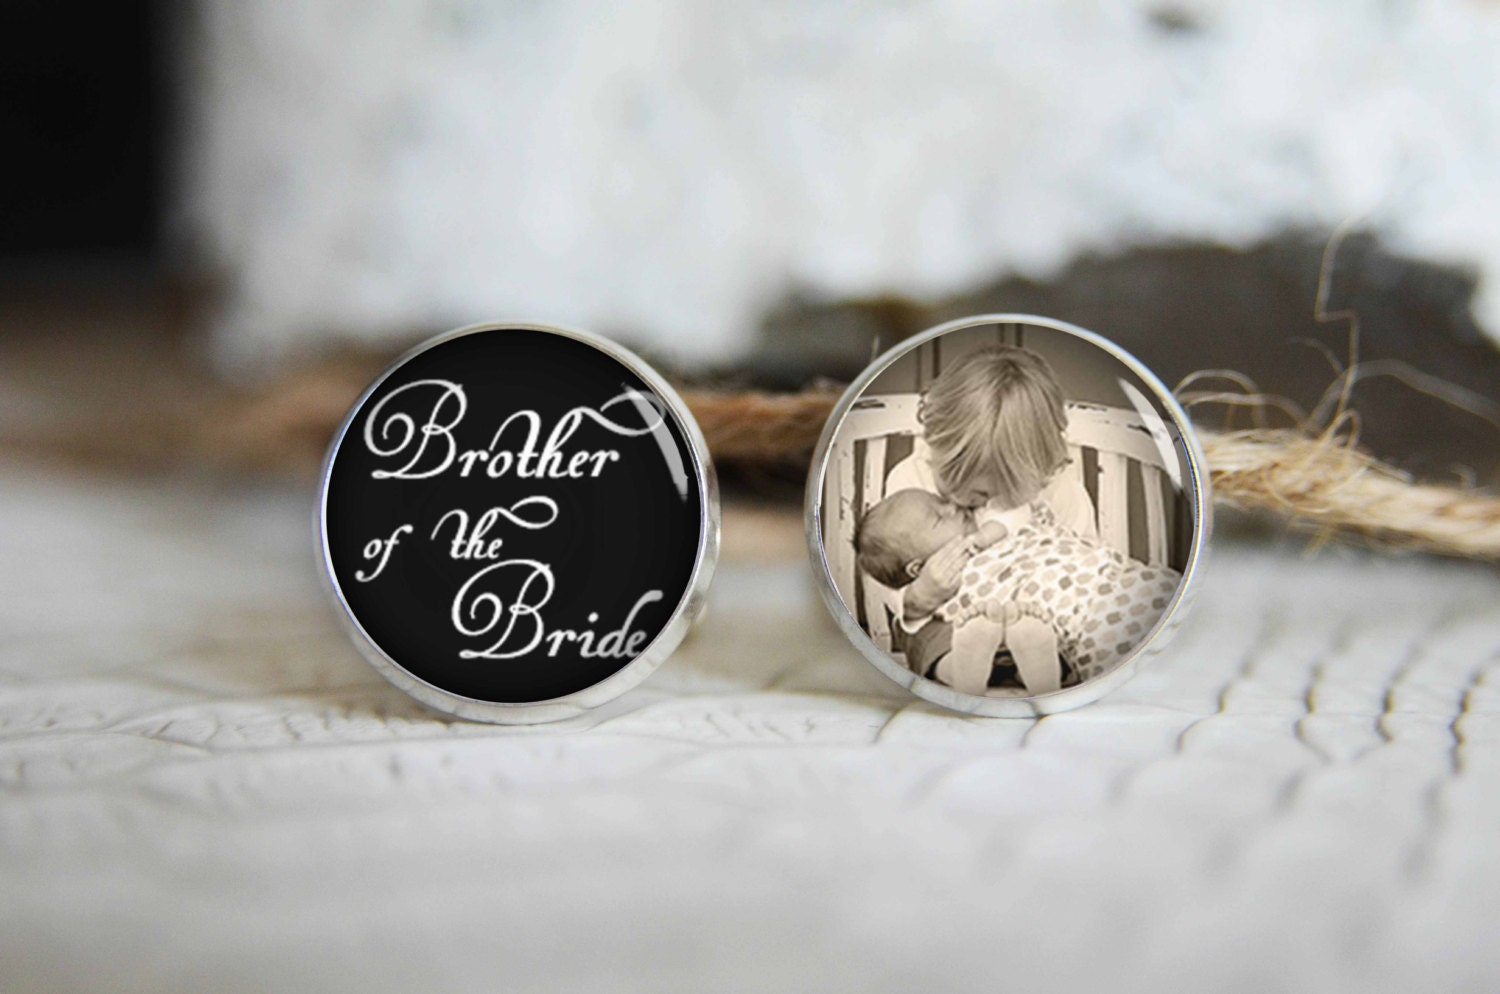 Chinese Wedding Gift Money Amount: Brother Of The Bride Personalized Photo Cufflinks Cool Gifts